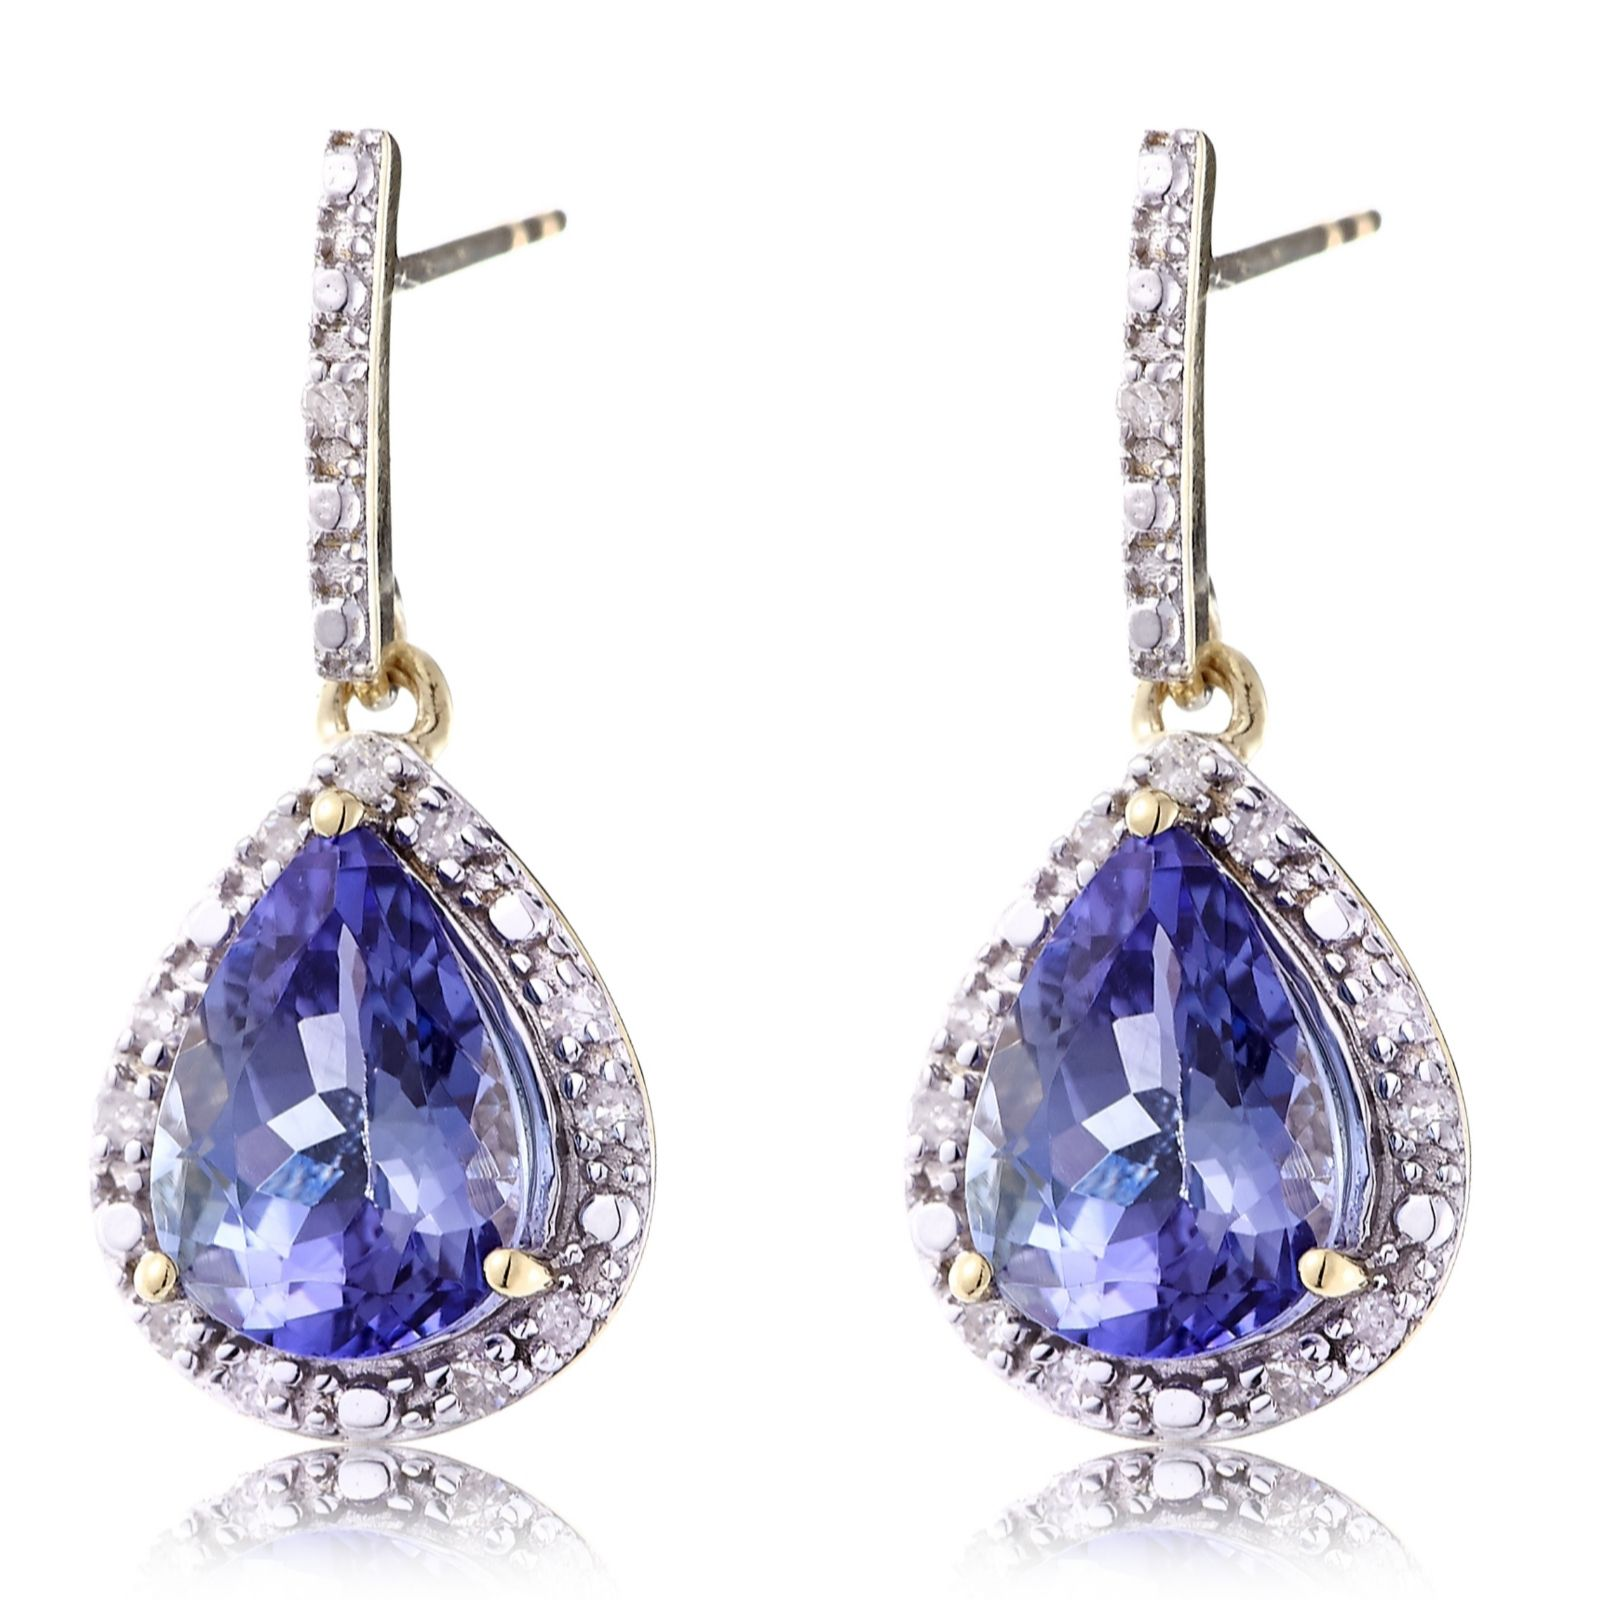 2.1ct Lilac Tanzanite & Diamond Drop Earrings 9ct Gold